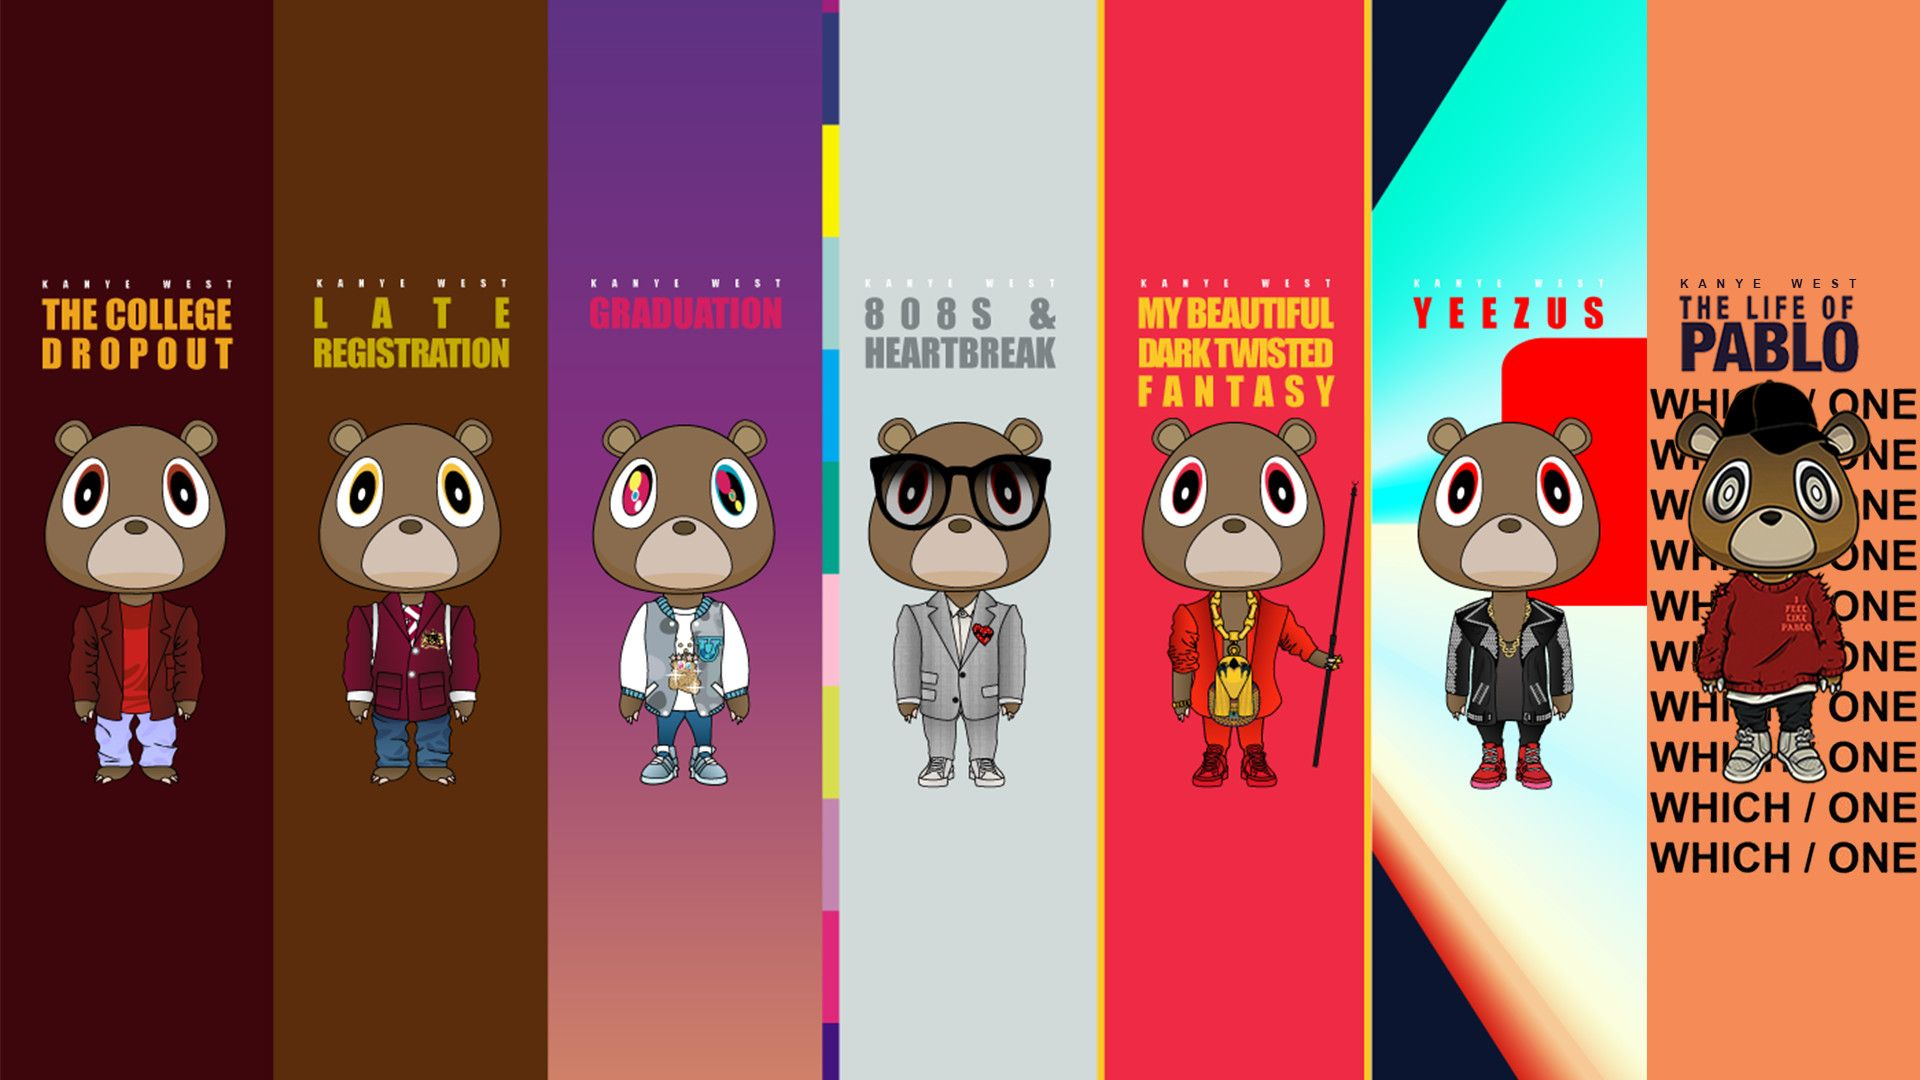 Kanye West Graduation Iphone Wallpapers On Wallpaperdog